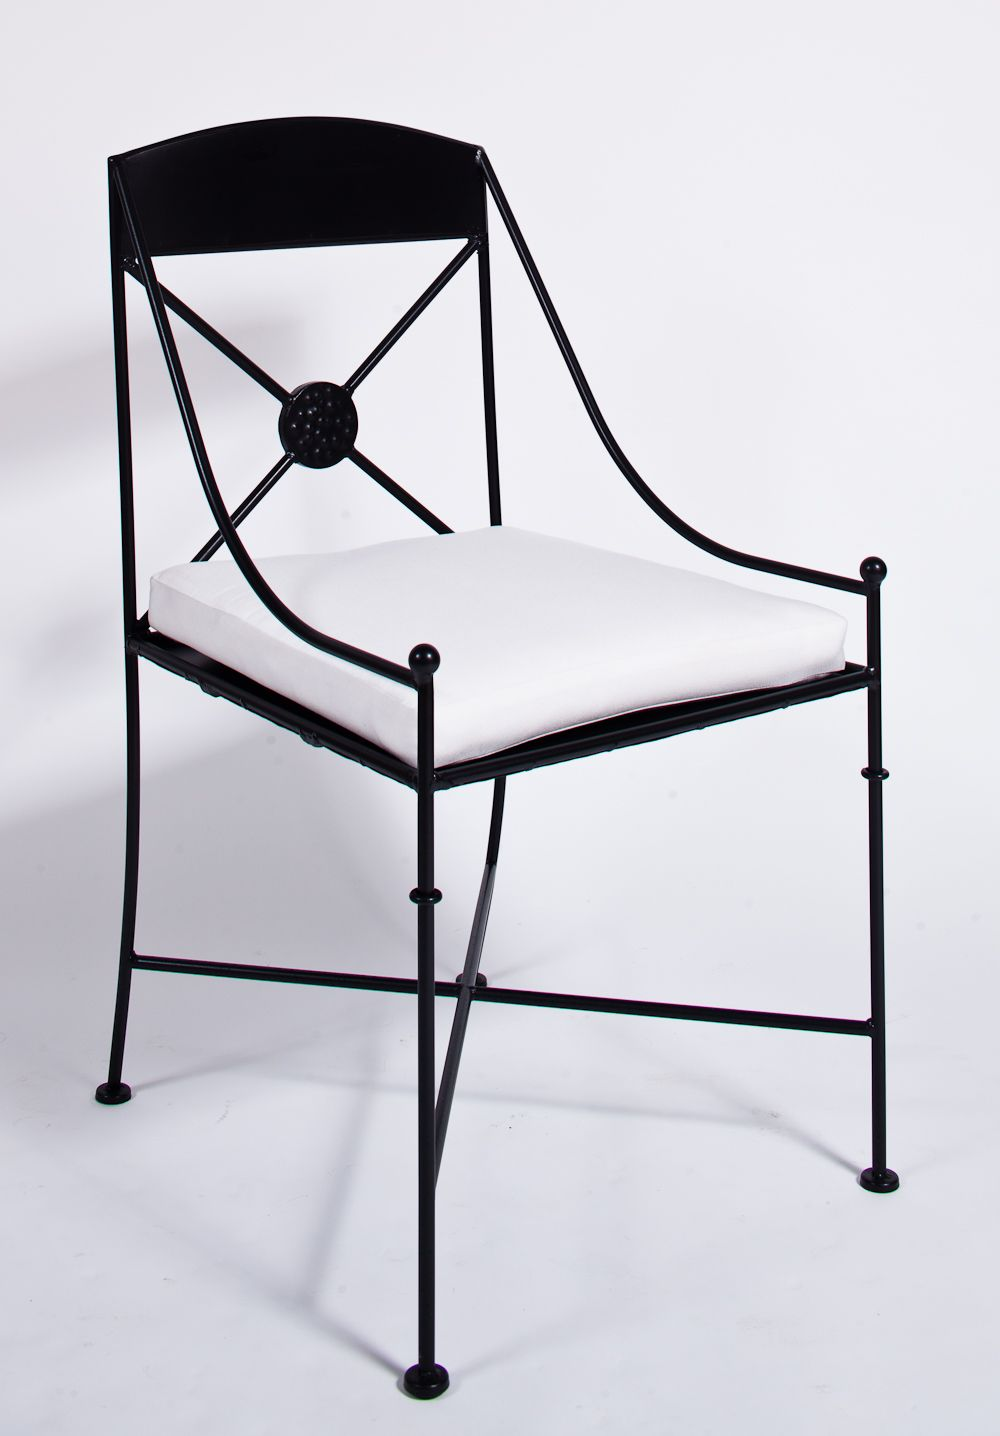 Iron Chair For Indoors Or Outdoors Sillas Mobiliario Mesa Y